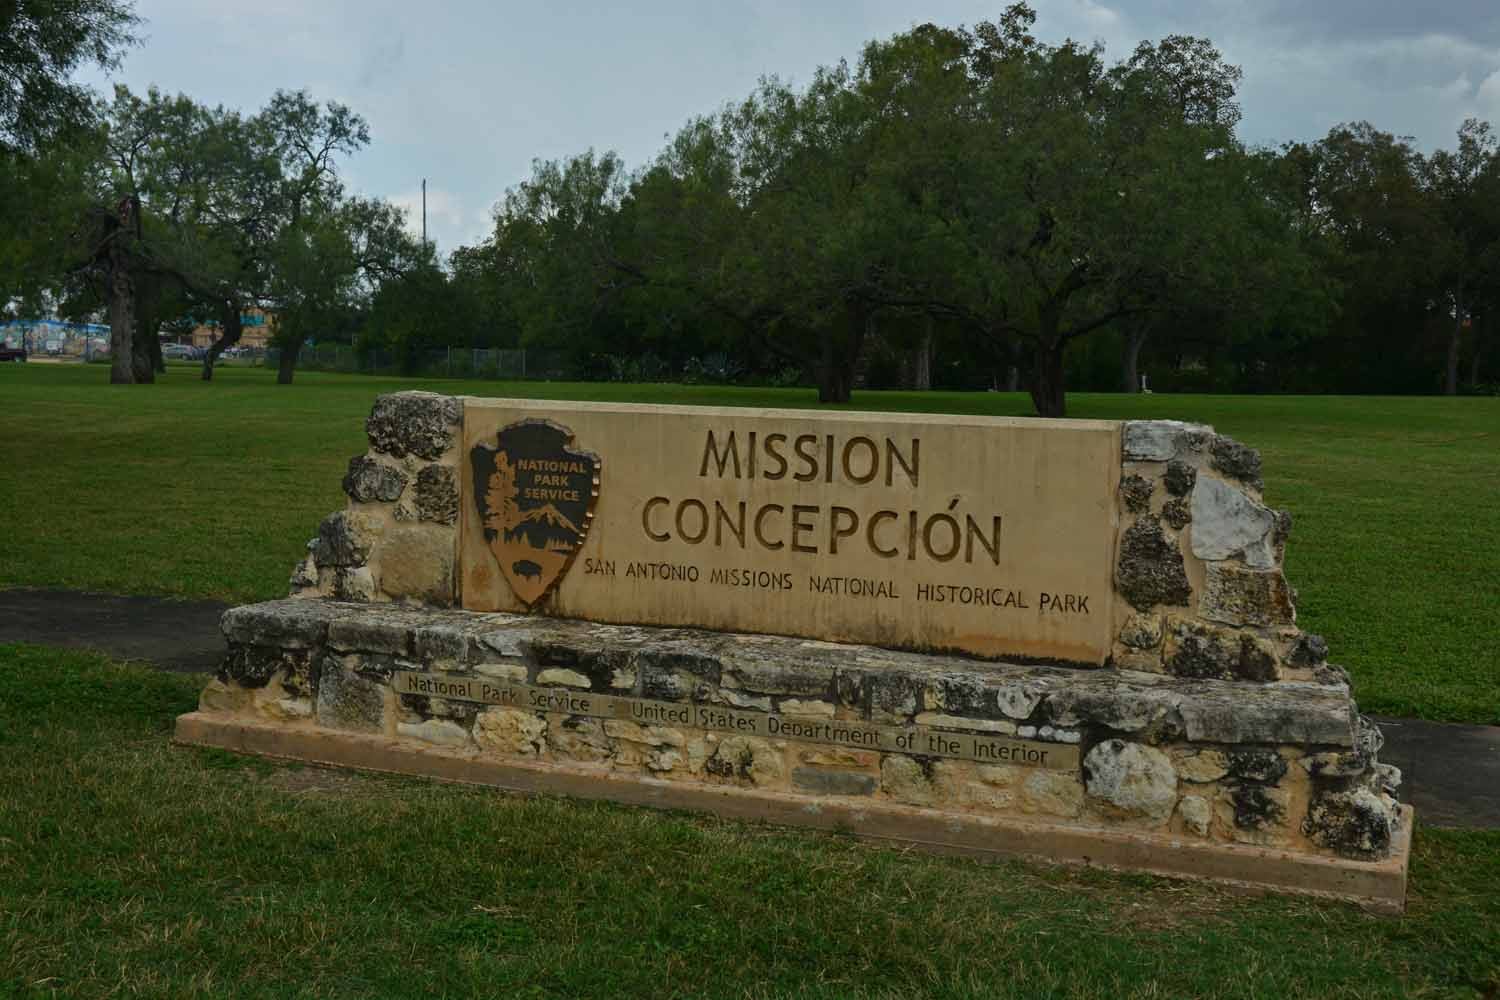 San Antonio has a heritage Mission Tour.  There are five missions including the Alamo.  Mission Concepcion was the first stop after the Alamo.